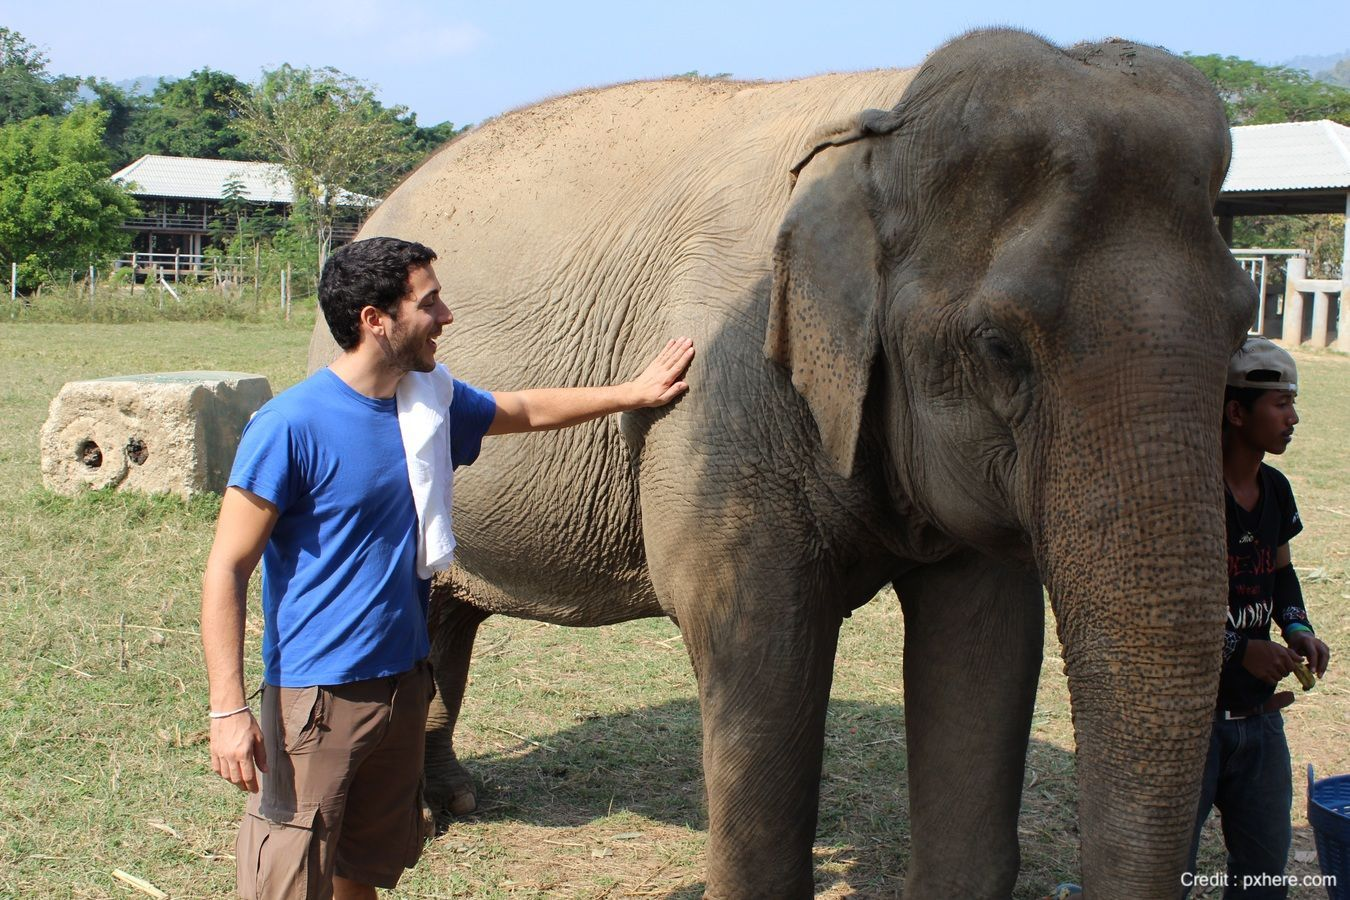 Inpatient treatment at The Dawn Rehab Thailand includes an excursion to an elephant jungle sanctuary